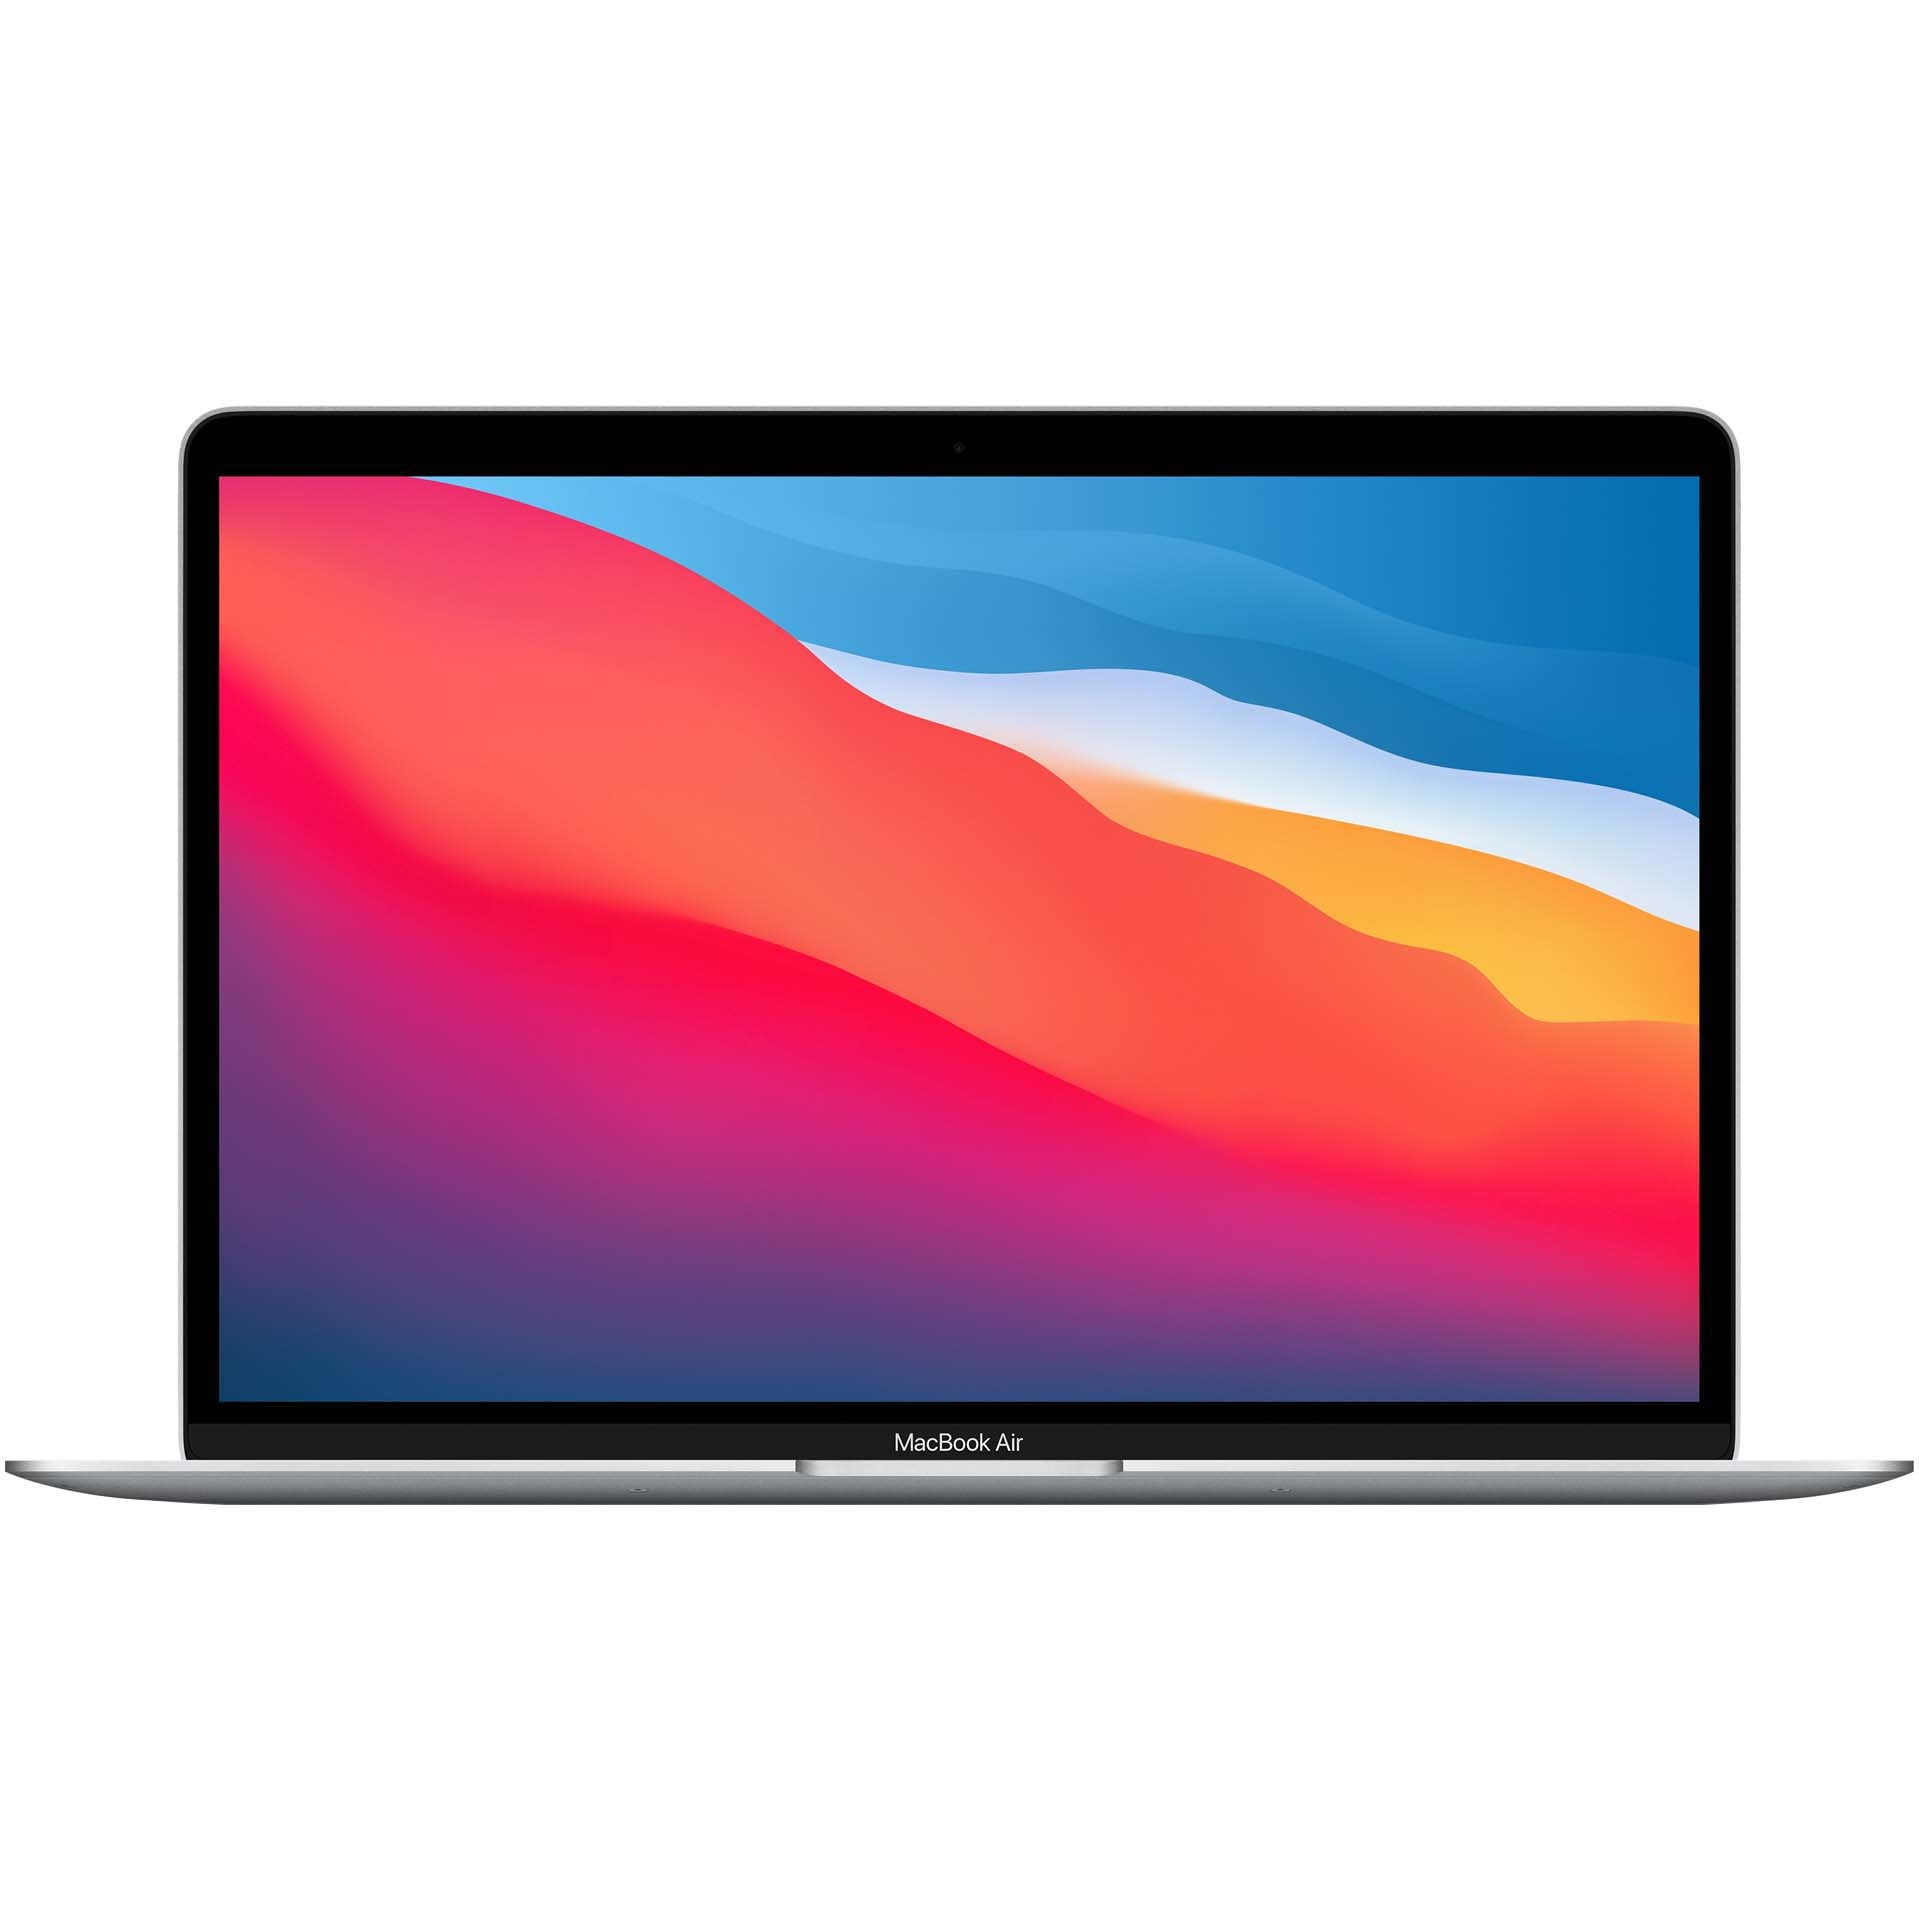 Fotografie Laptop Apple MacBook Air 13-inch, True Tone, procesor Apple M1 , 8 nuclee CPU si 8 nuclee GPU, 8GB, 512GB, Silver, INT KB